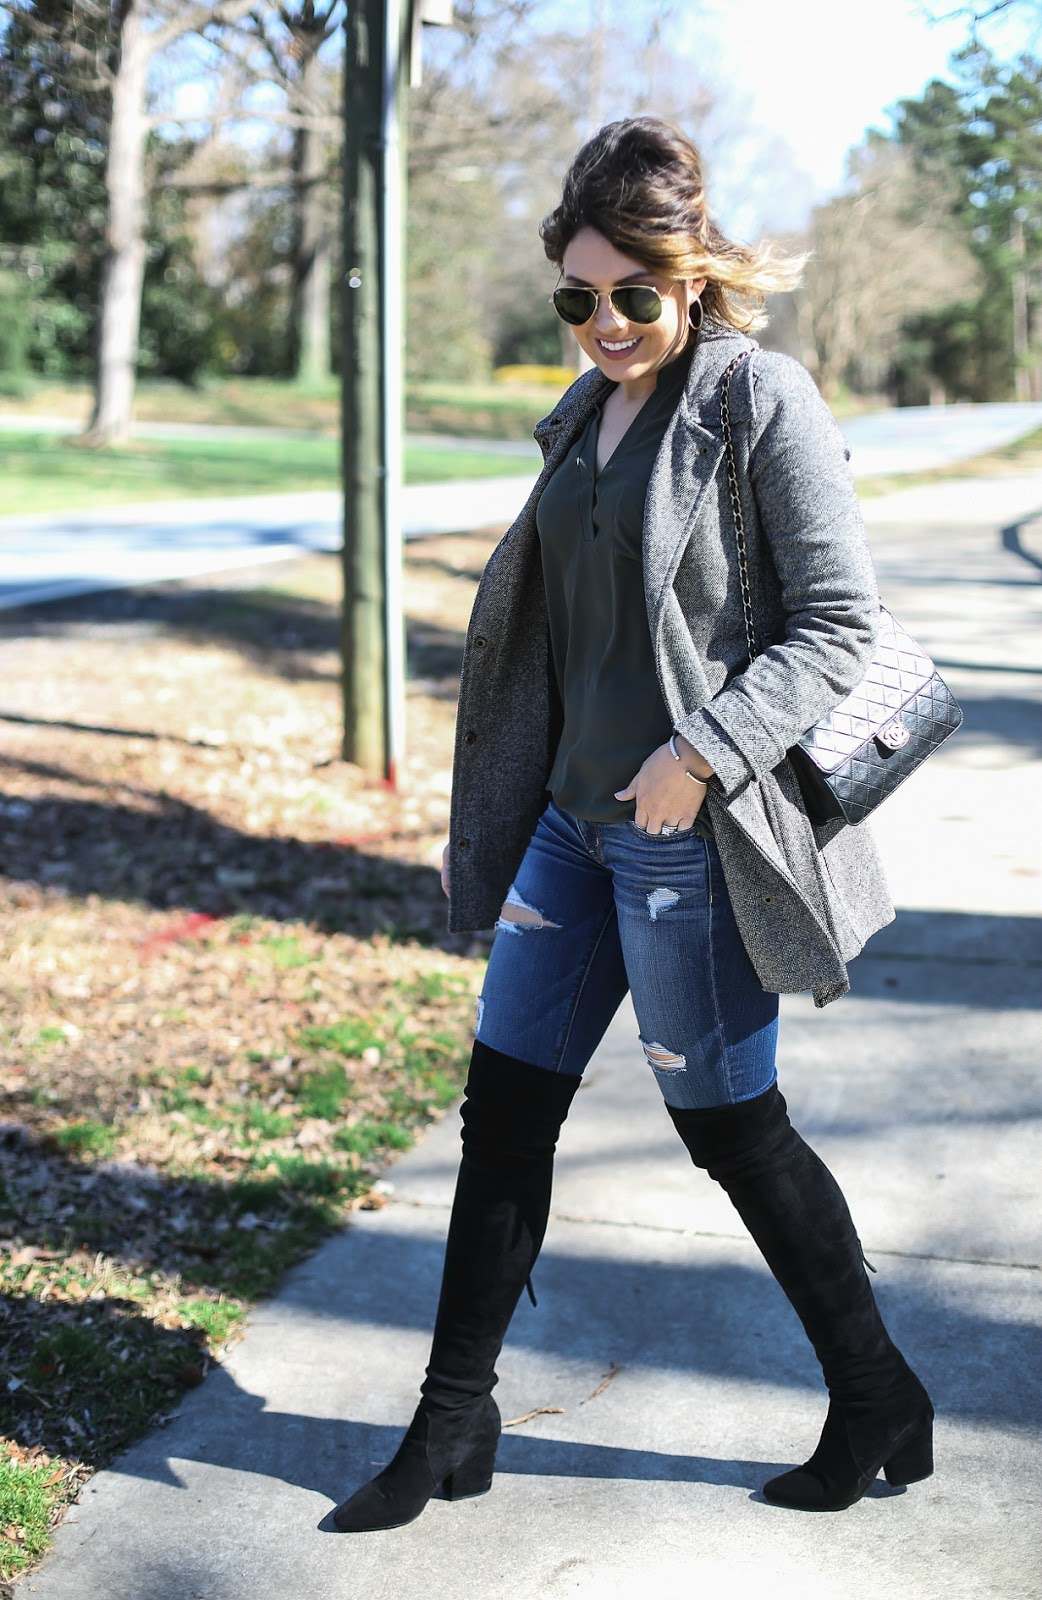 nordstrom lush tunic, blonde salade, over the knee boots